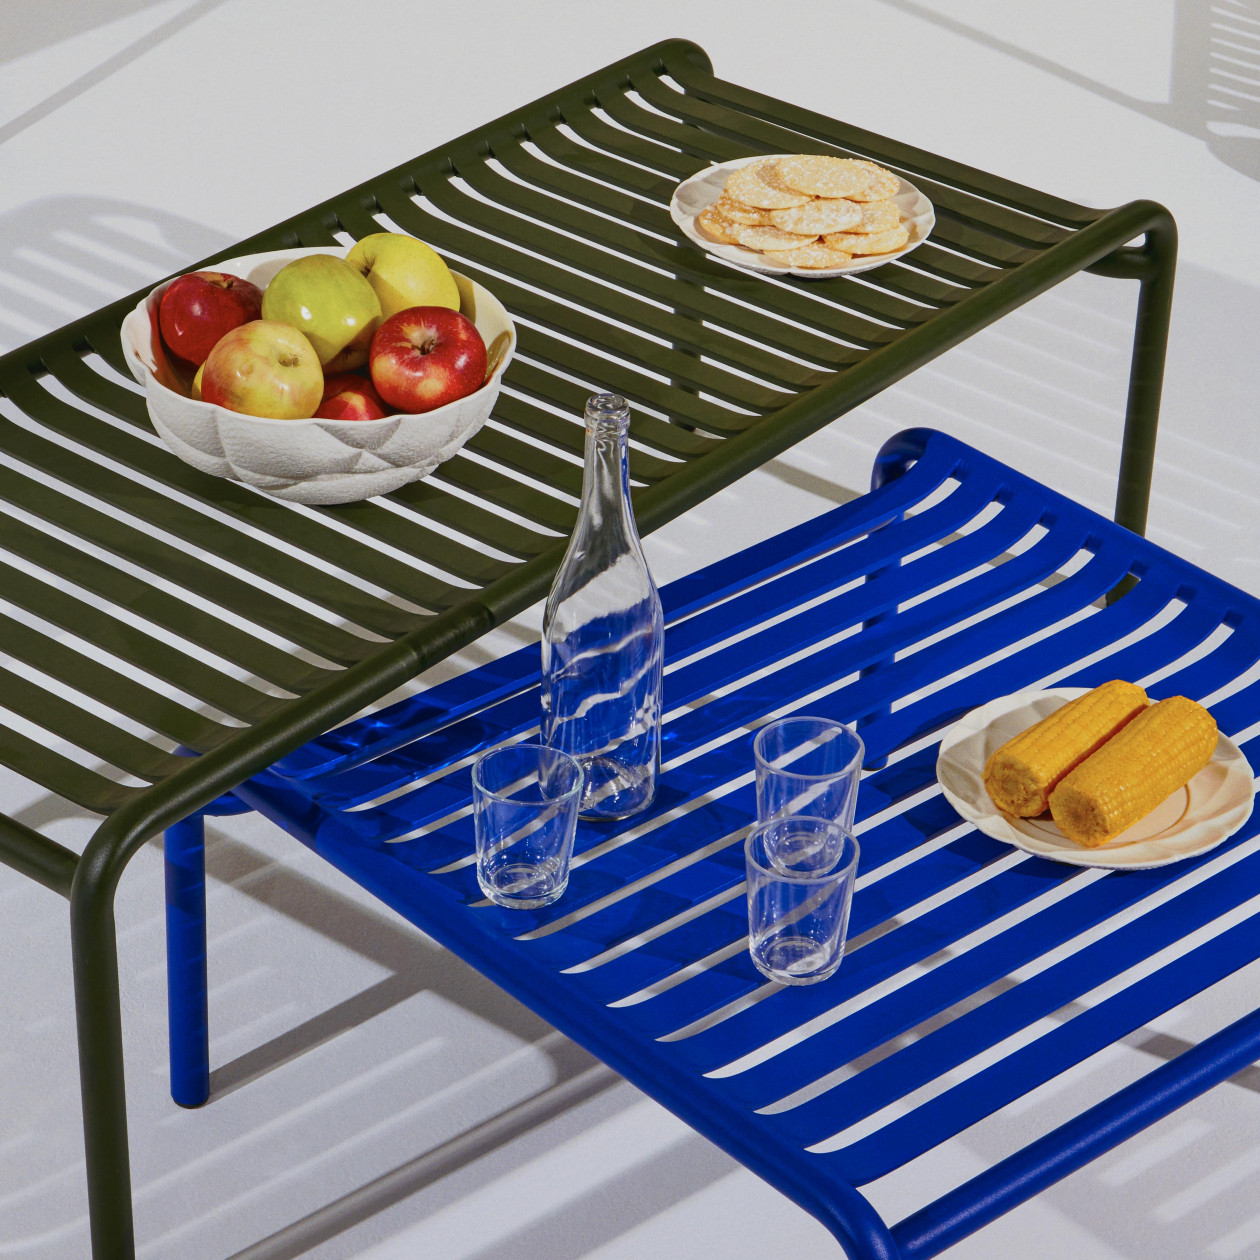 Week-End Coffee Table - The WEEK-END collection is a full range of outdoor furniture. Designed with practicality in mind, all of the seats are stackable. The Week-End collection is a complete range of outdoor furniture. The oval and circular shape drawn by the backrests makes them a graphic statement. The impact of the horizontal and vertical slats, so similar to stripes, highlights the full and empty spaces, asserting the identity of the collection.